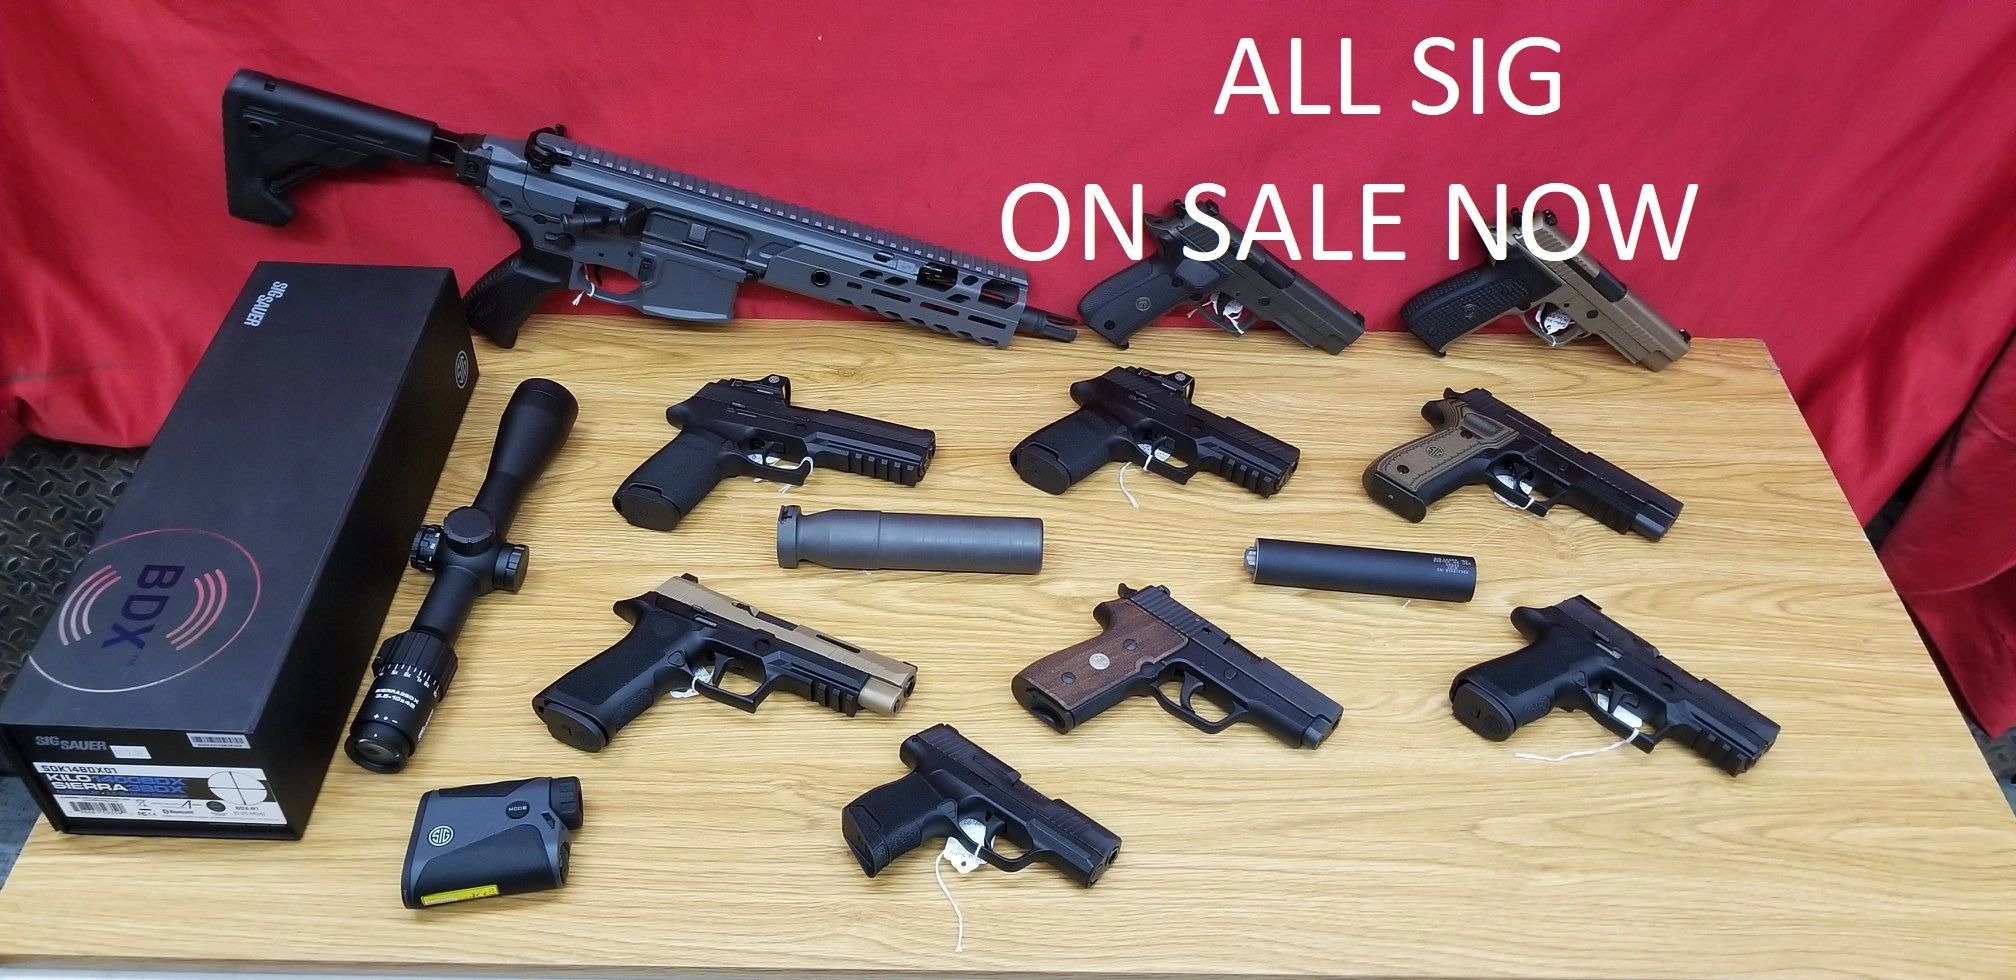 DKMAGS - Guns, DKMAGS in New Brighton, Guns and Ammunition, Ffl